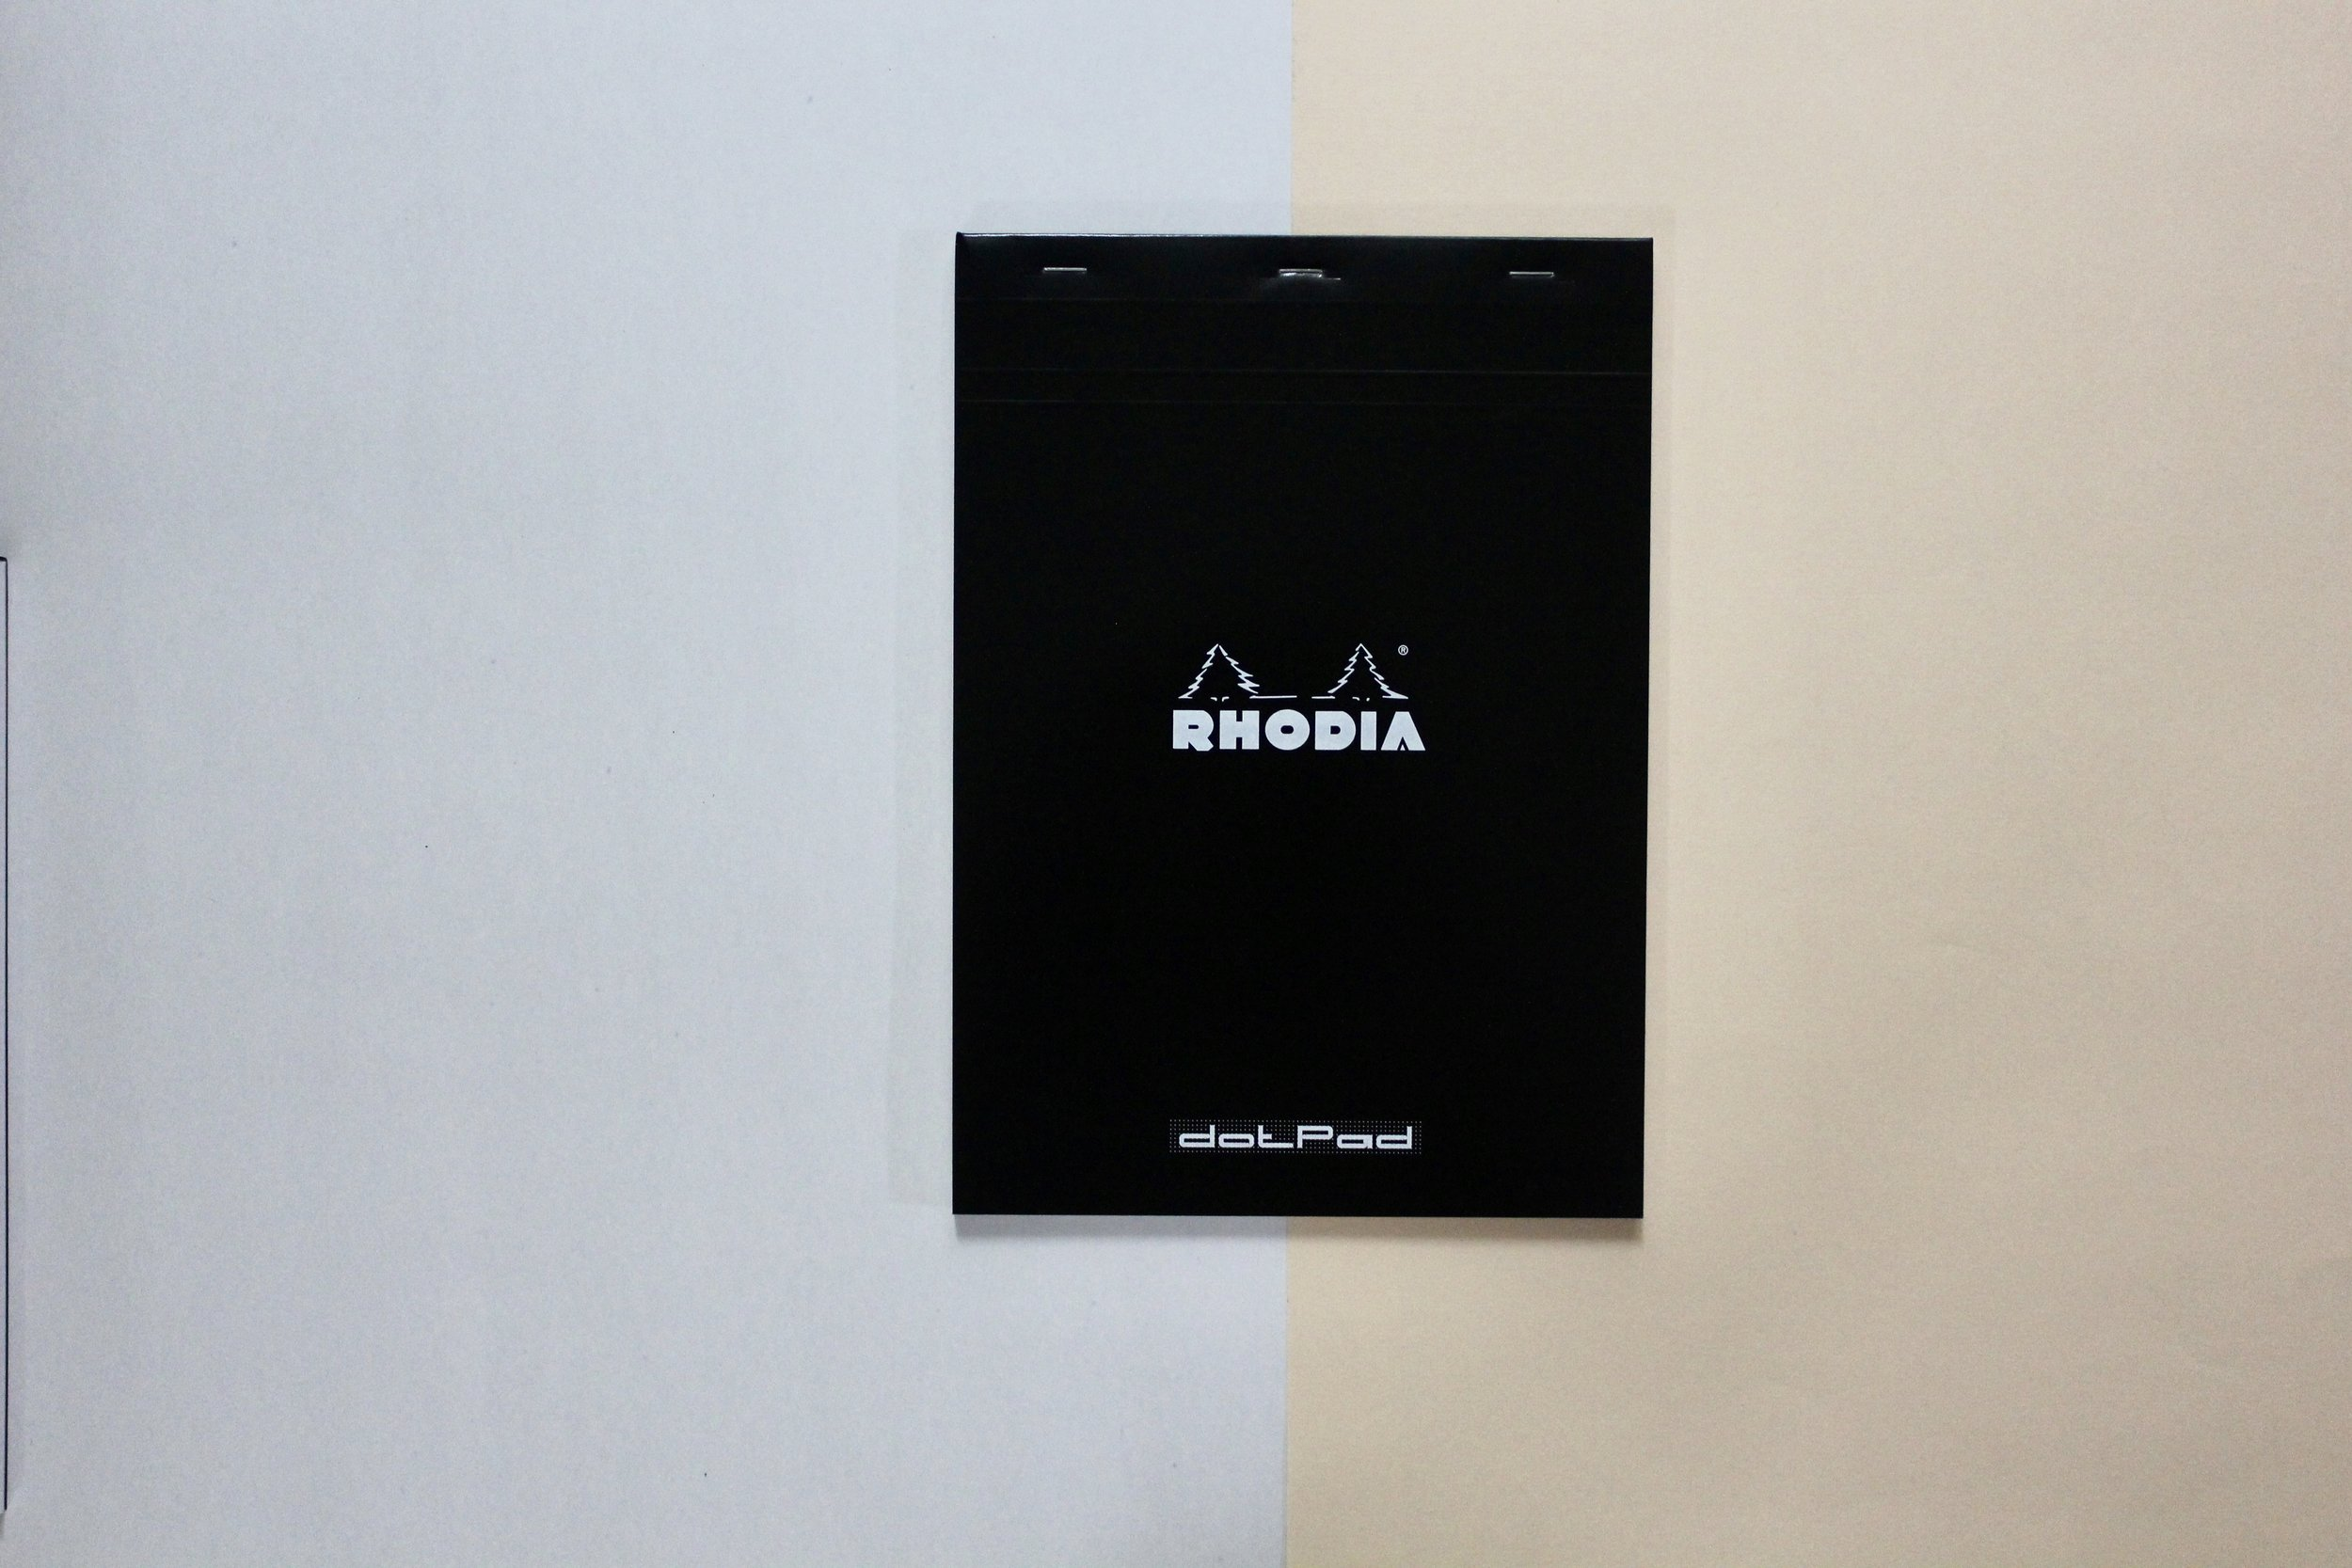 Rhodia Basics / A4 Dot Pad ★ 80 sheets ($10)